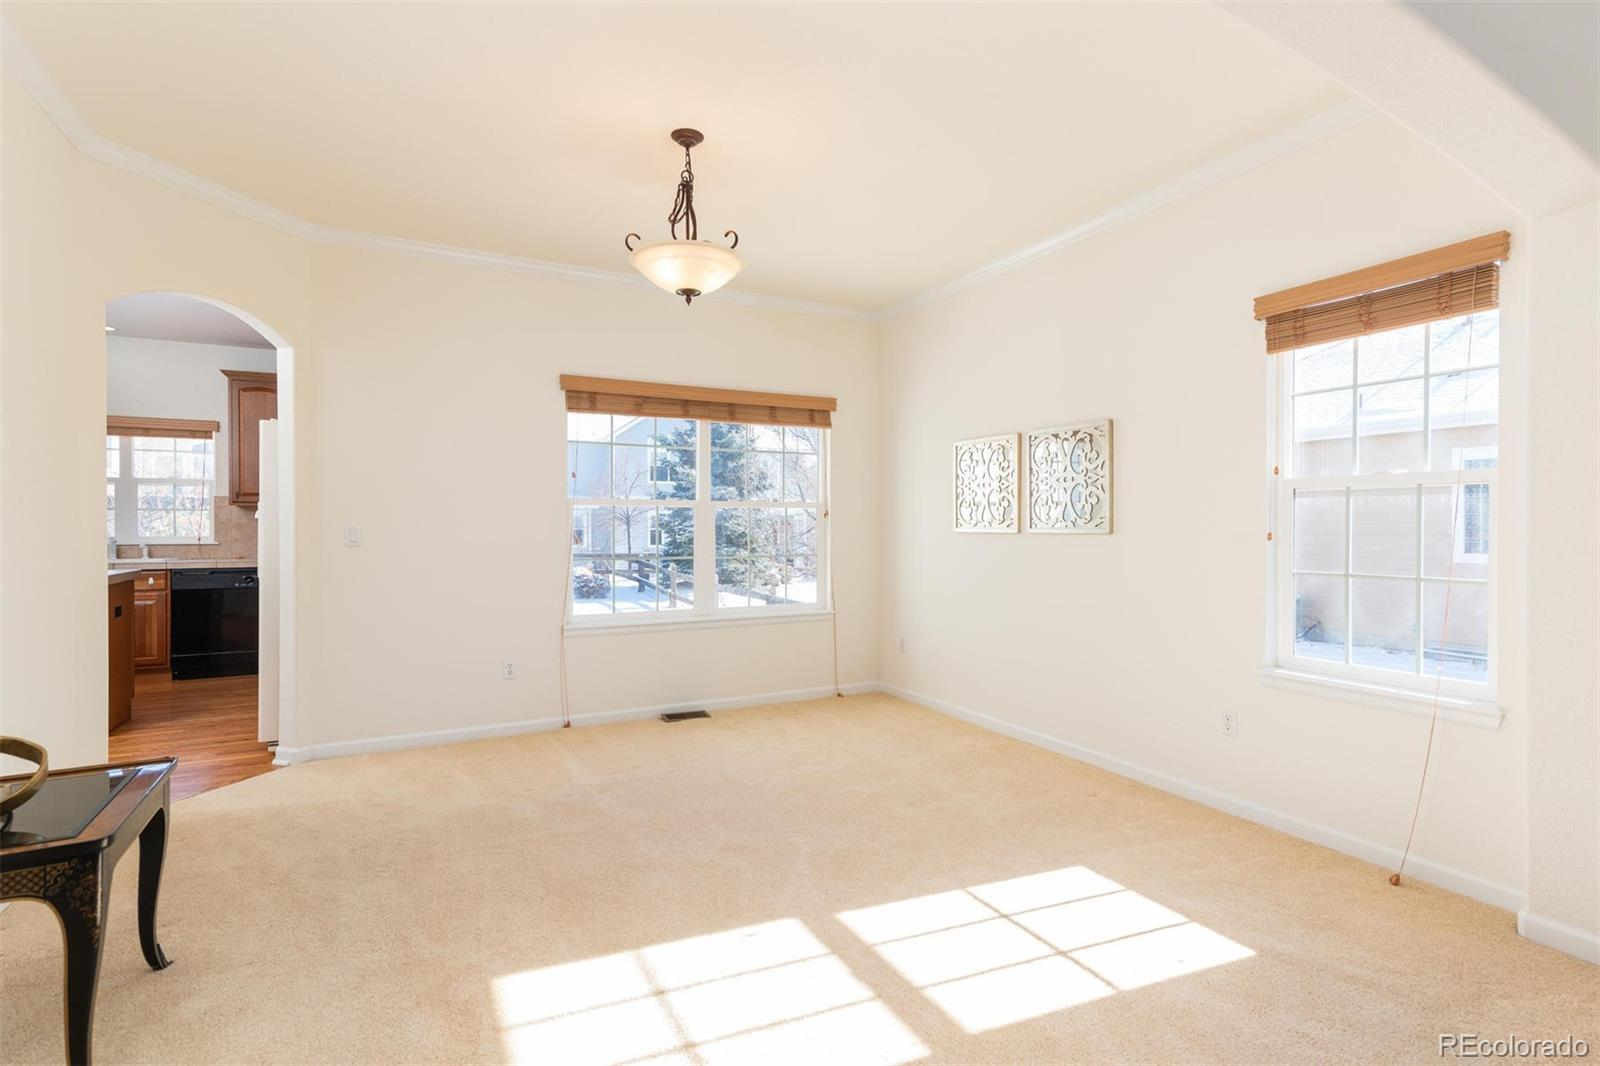 MLS# 3442851 - 9 - 6552 S Ouray Way, Aurora, CO 80016